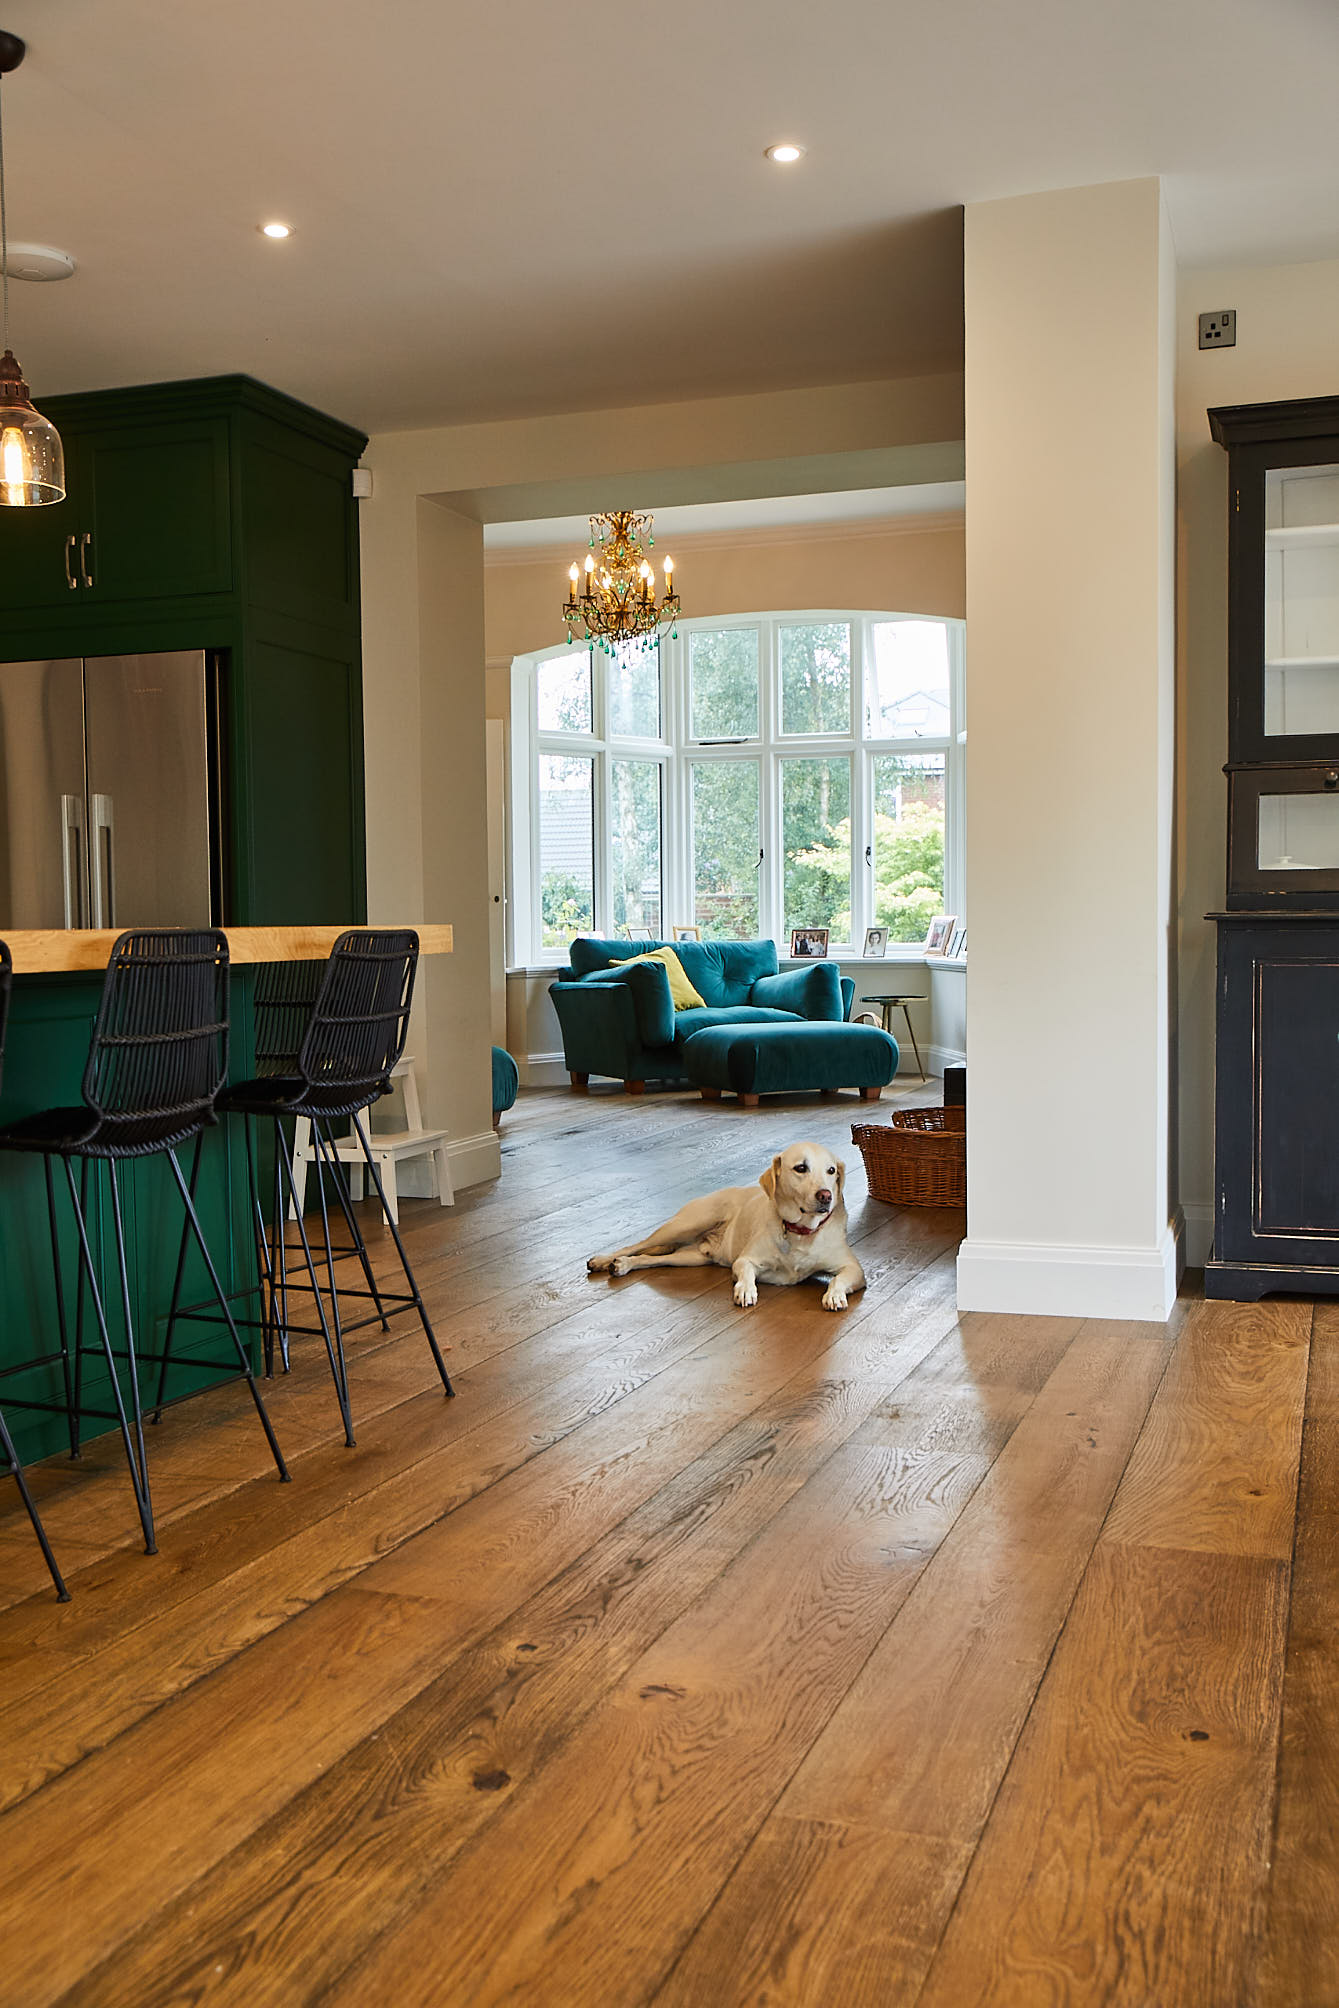 Rustic engineered oak kitchen flooring with dog laying down